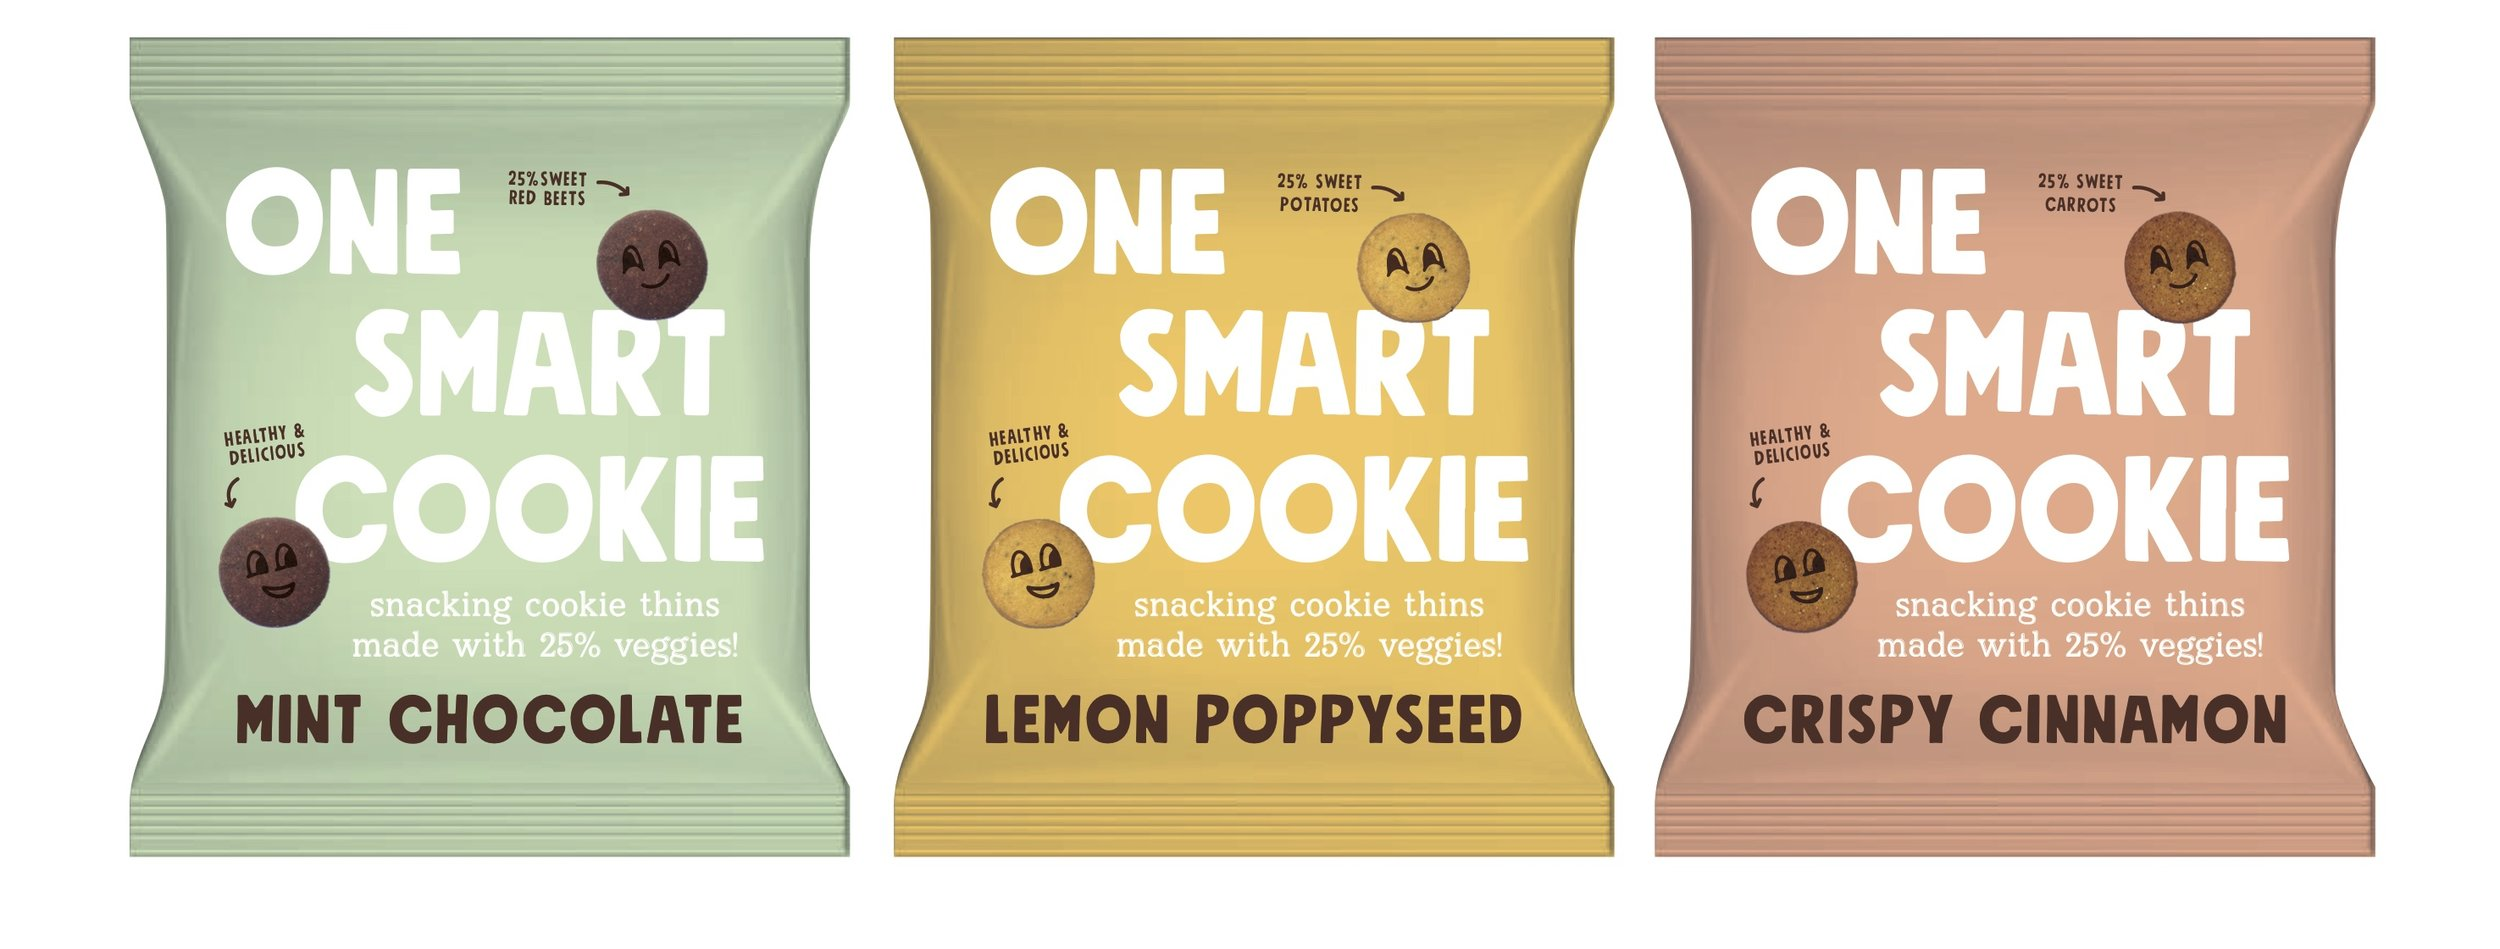 Treasure8-OneSmartCookie-PackagingDesign.jpg